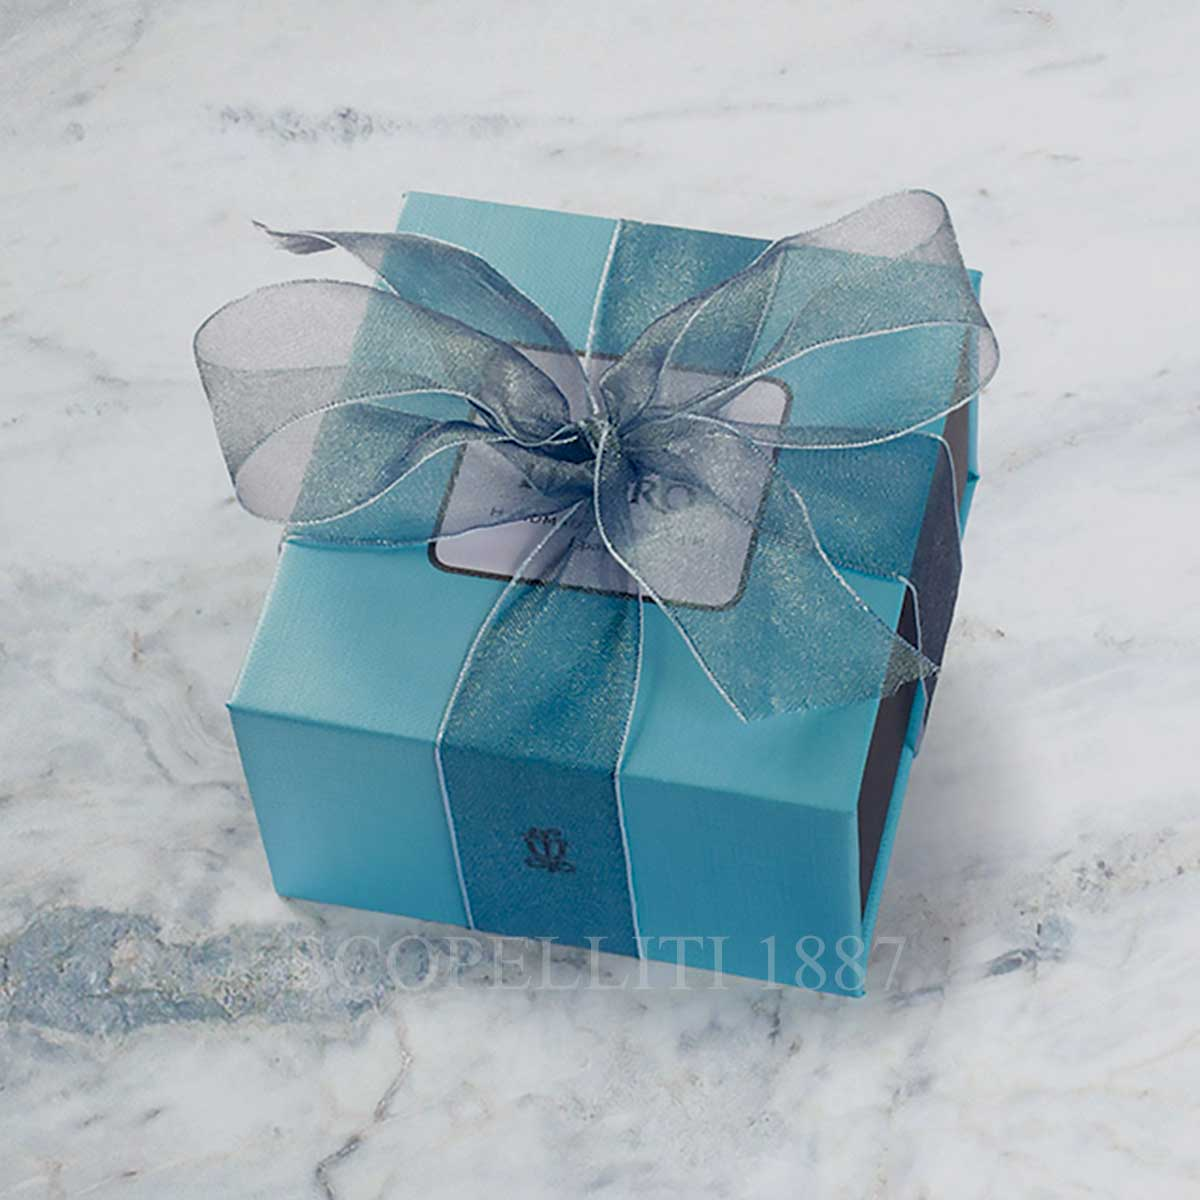 lladro small gift box